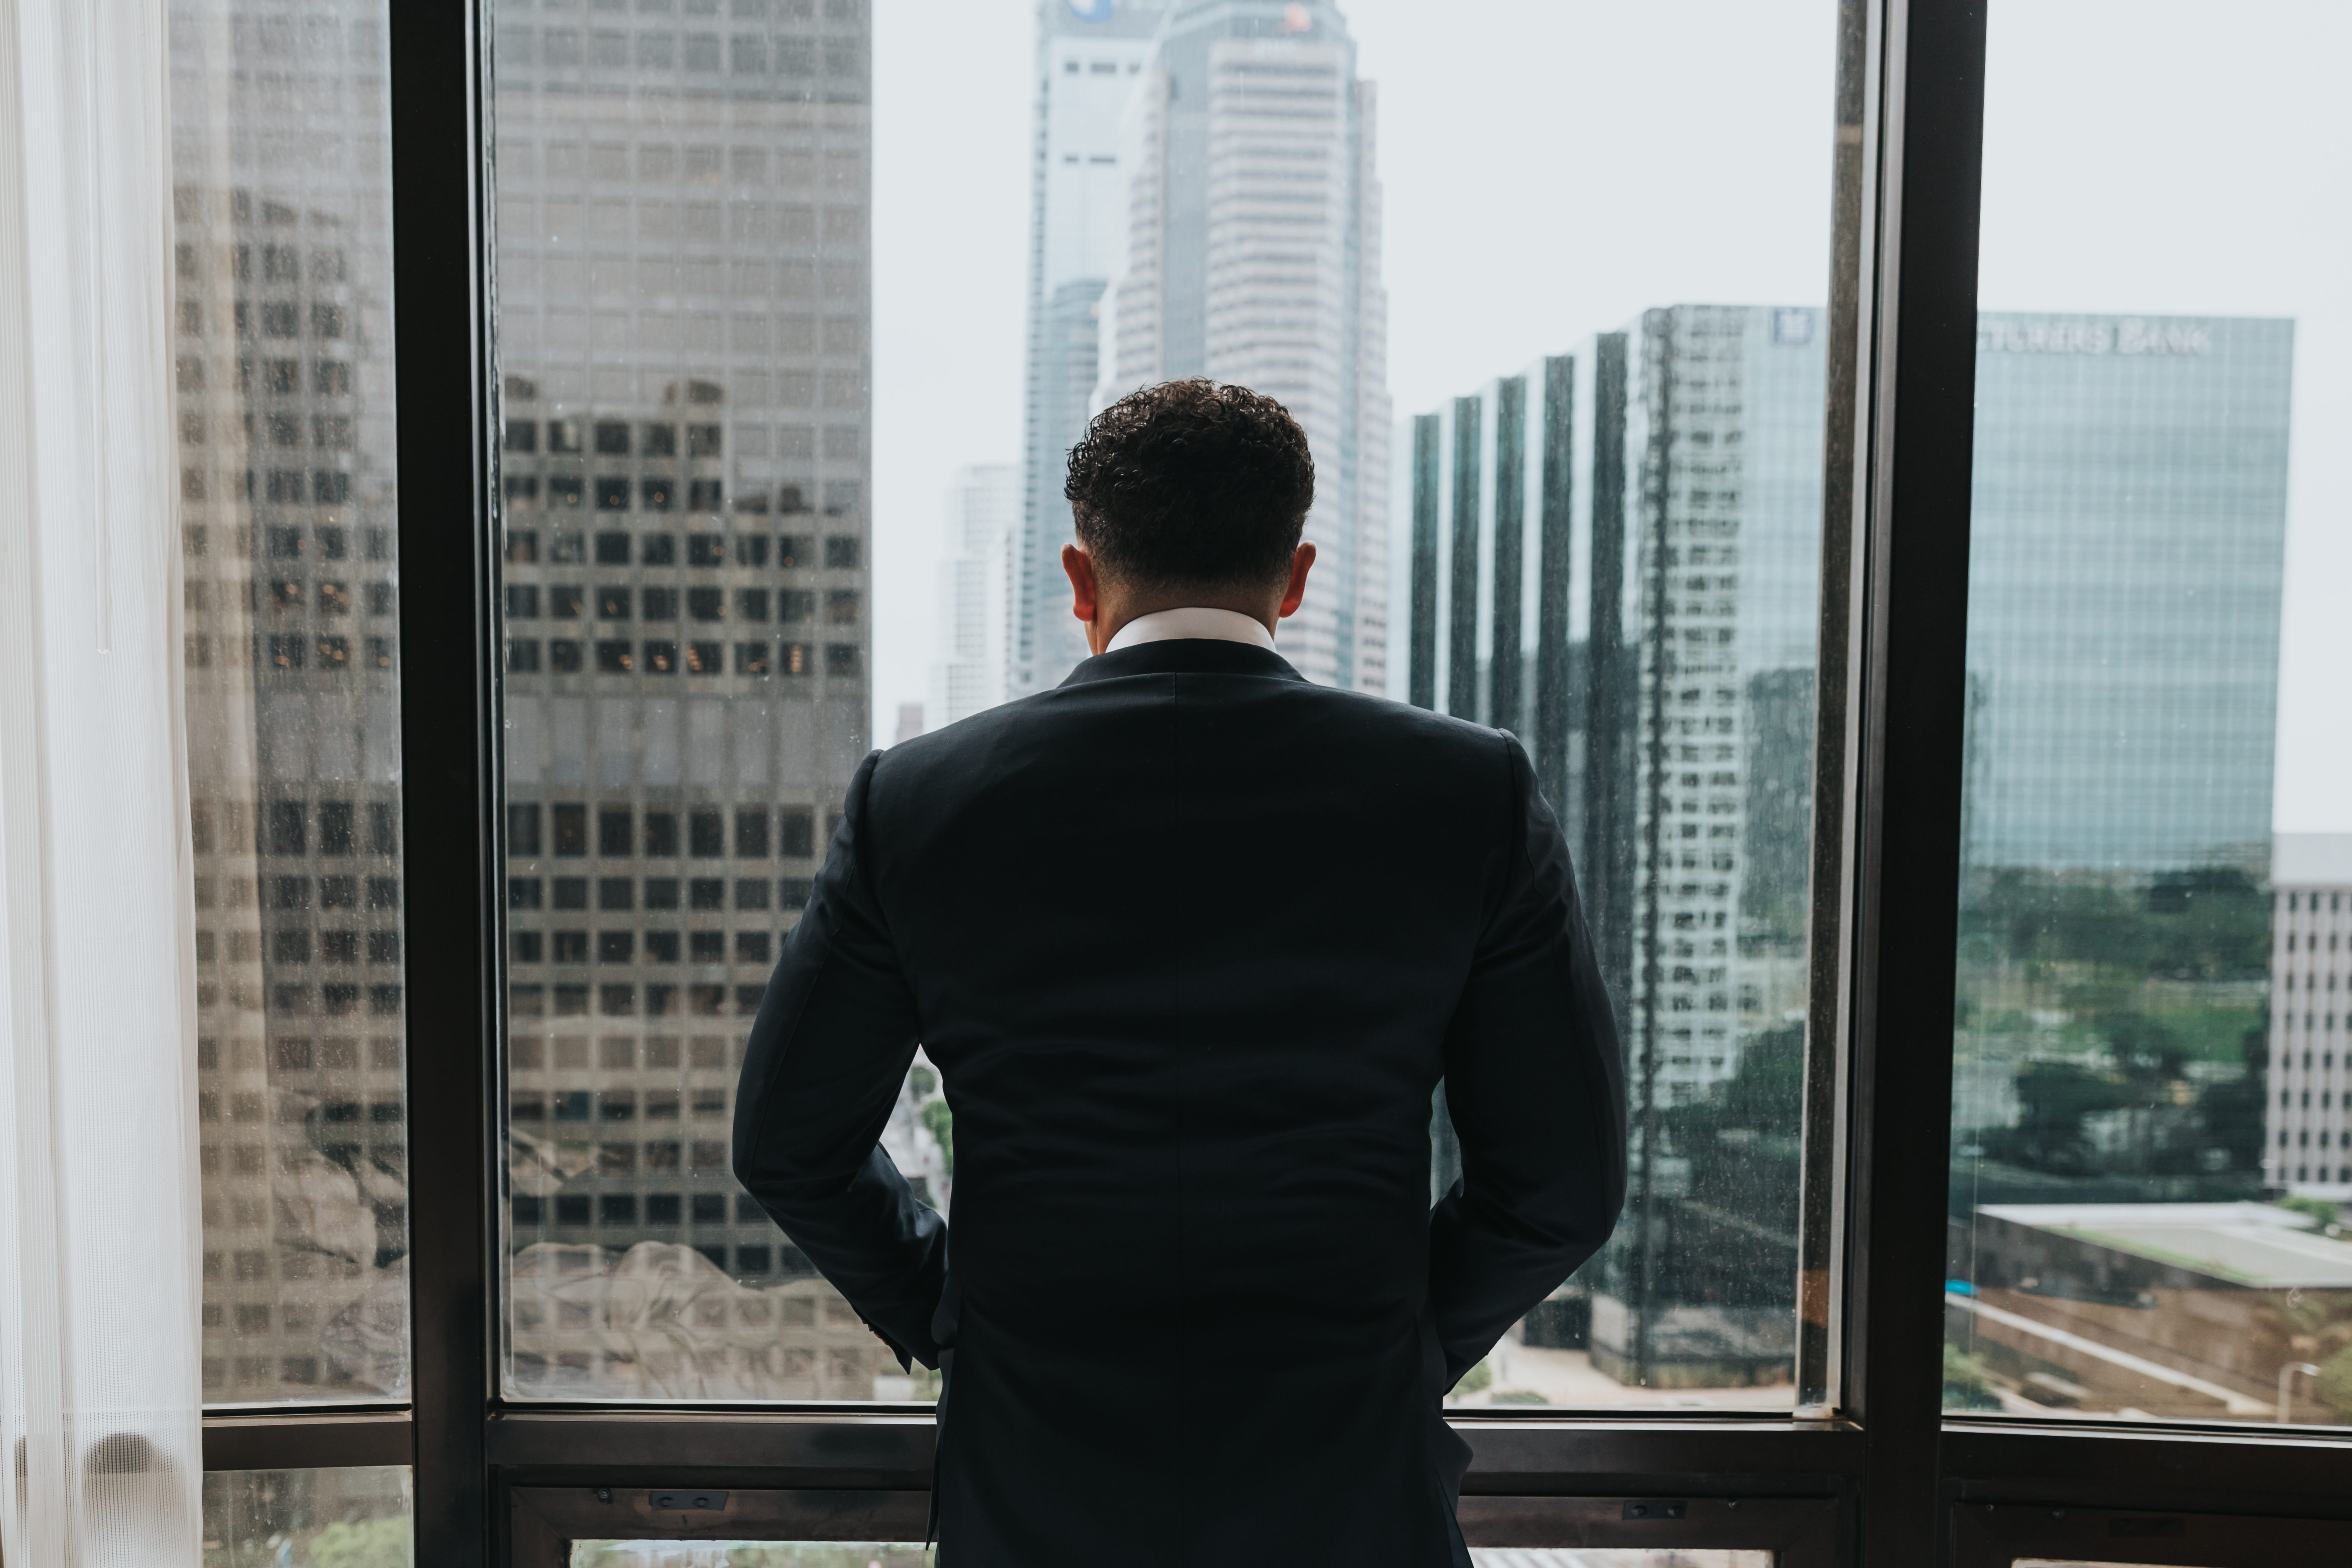 Man in suit, hands in pockets, looking out window of office building; image by Nathan Dumlao, via Unsplash.com.